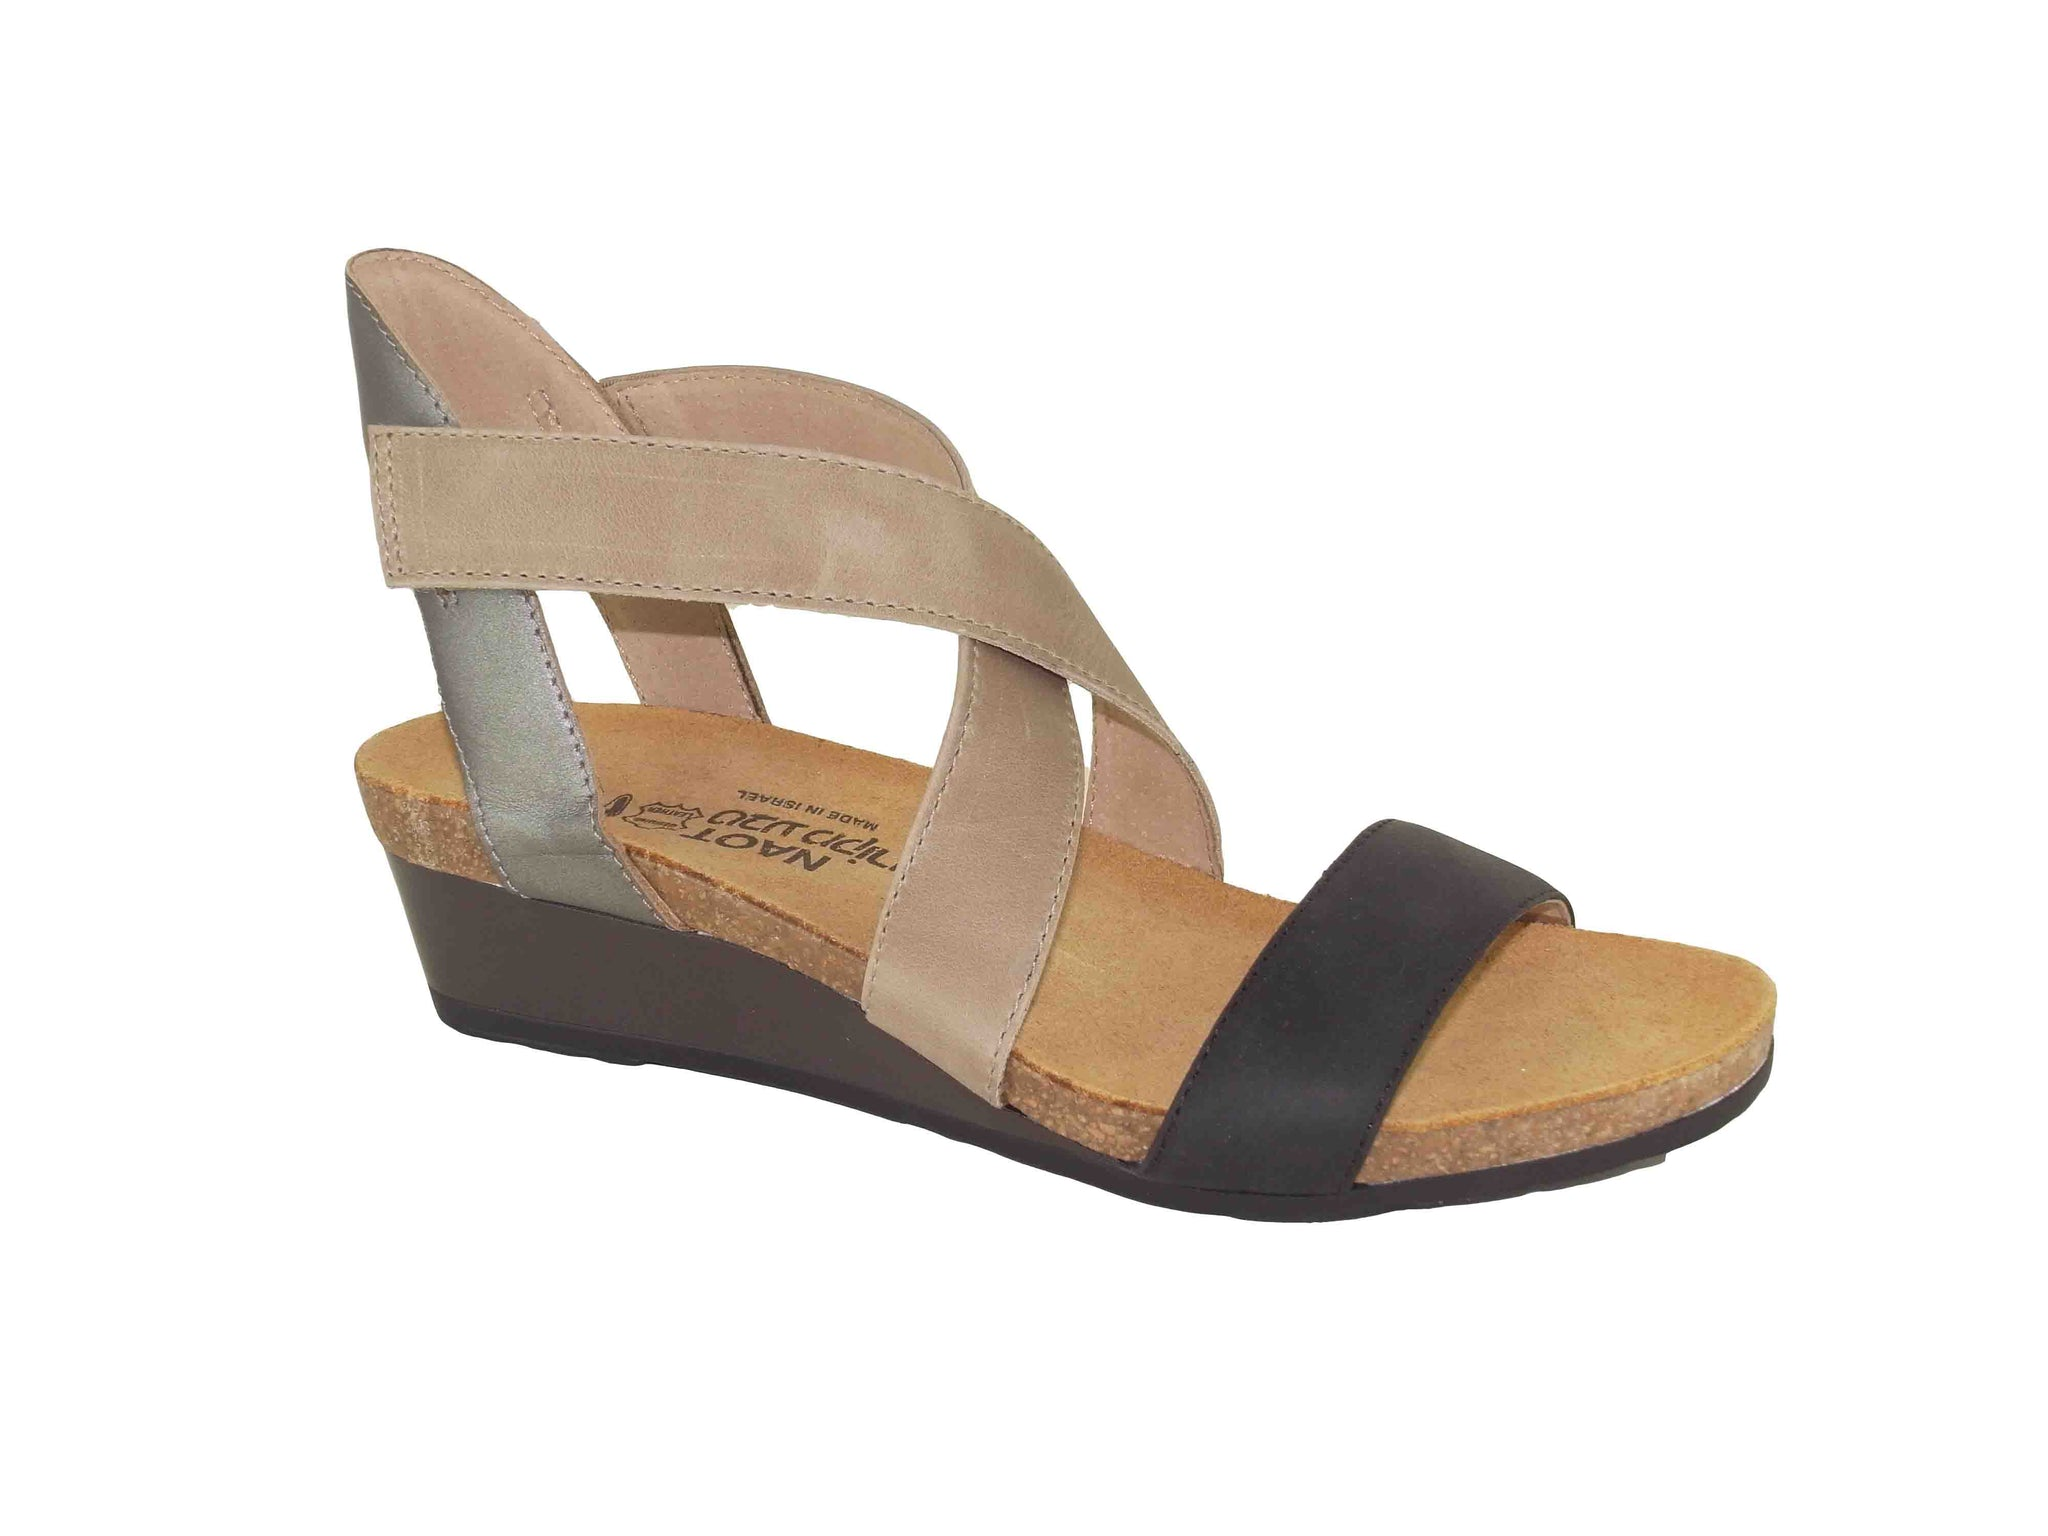 Naot - Vixen Sandals - Coal Oily Khaki Beige